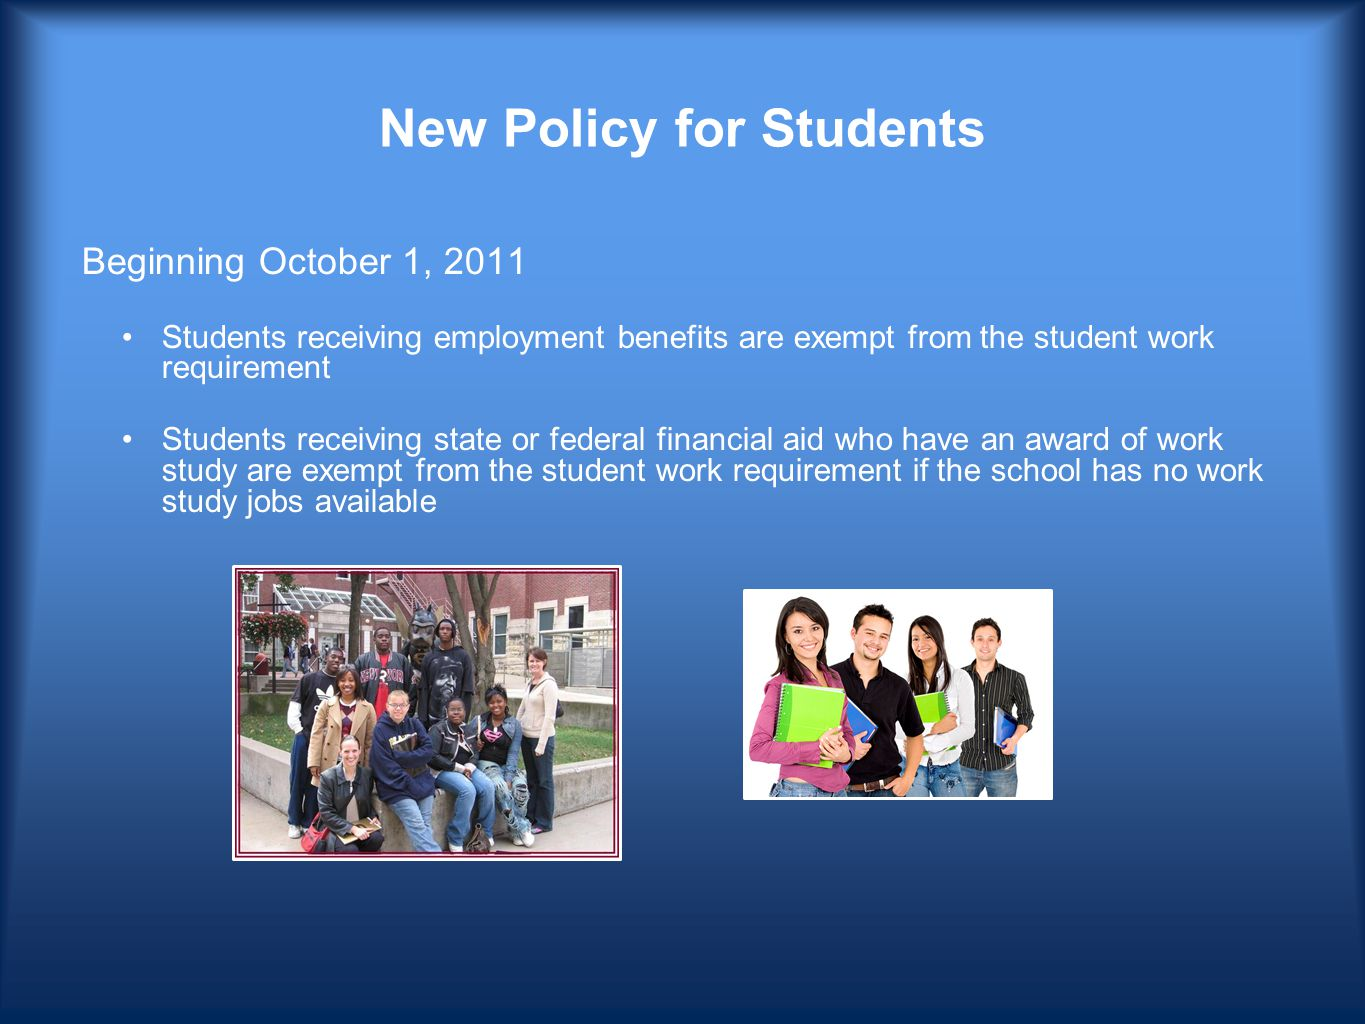 New Policy for Students Beginning October 1, 2011 Students receiving employment benefits are exempt from the student work requirement Students receiving state or federal financial aid who have an award of work study are exempt from the student work requirement if the school has no work study jobs available